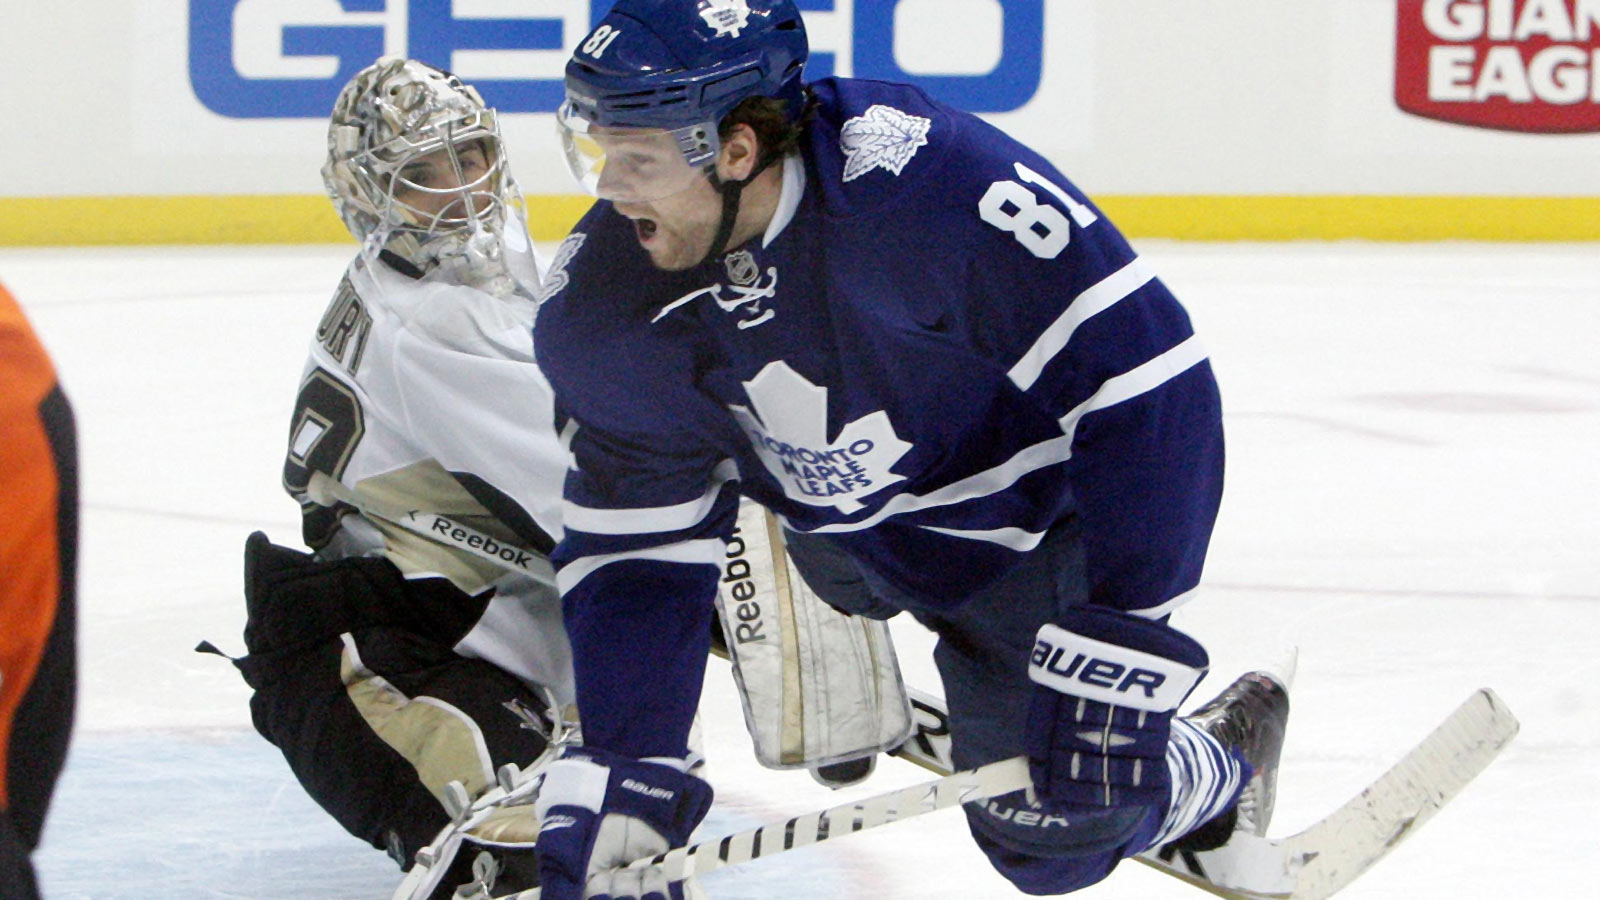 Fleury on Kessel: 'It'll be good to watch him to play on our side now'